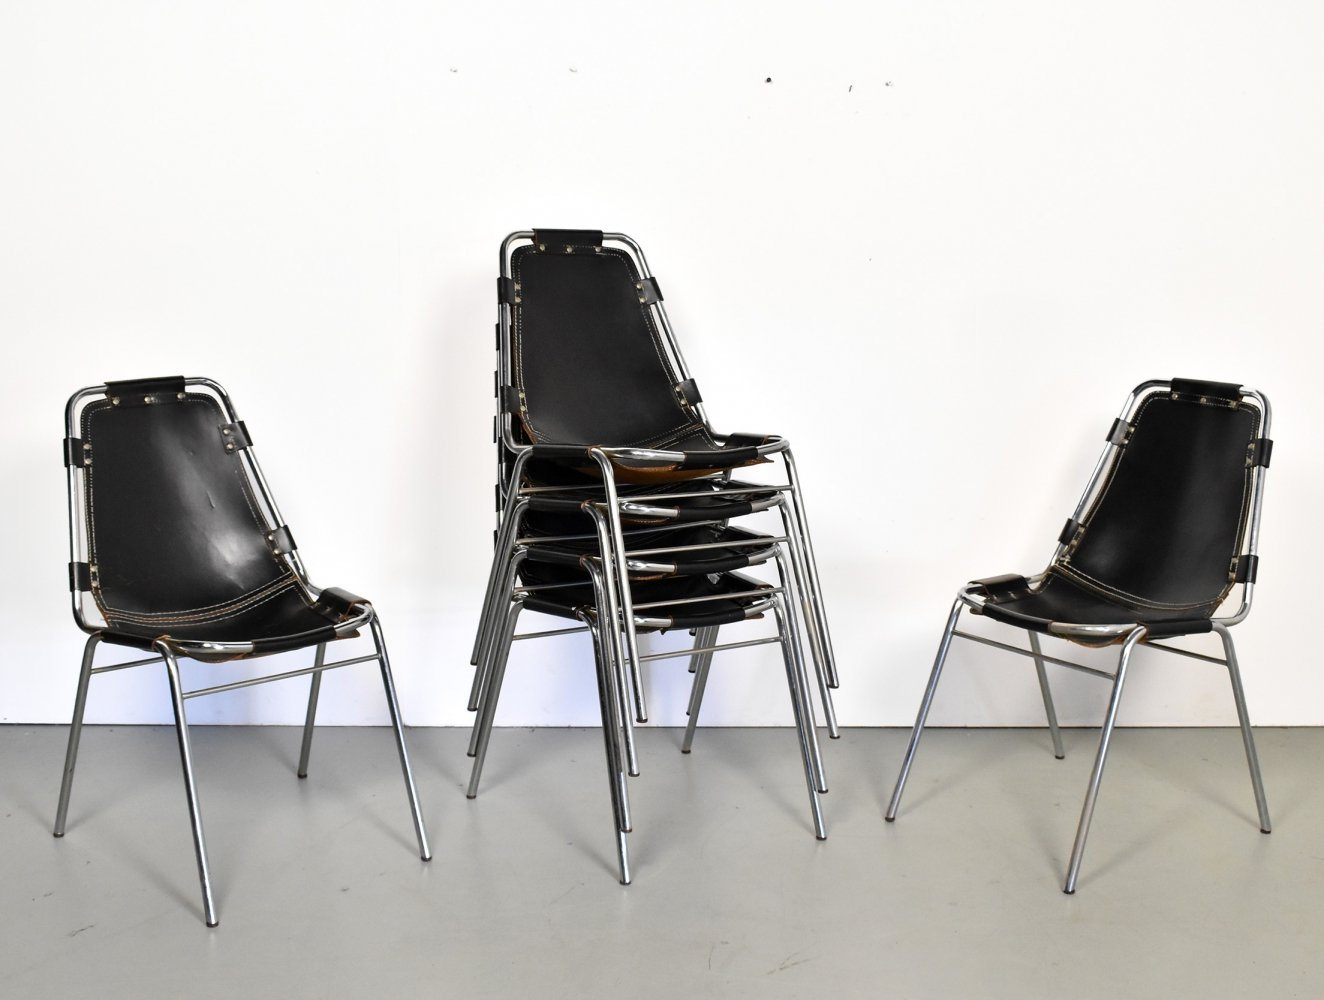 Set of 6 leather chairs selected by Charlotte Perriand for Les Arcs, 1960s